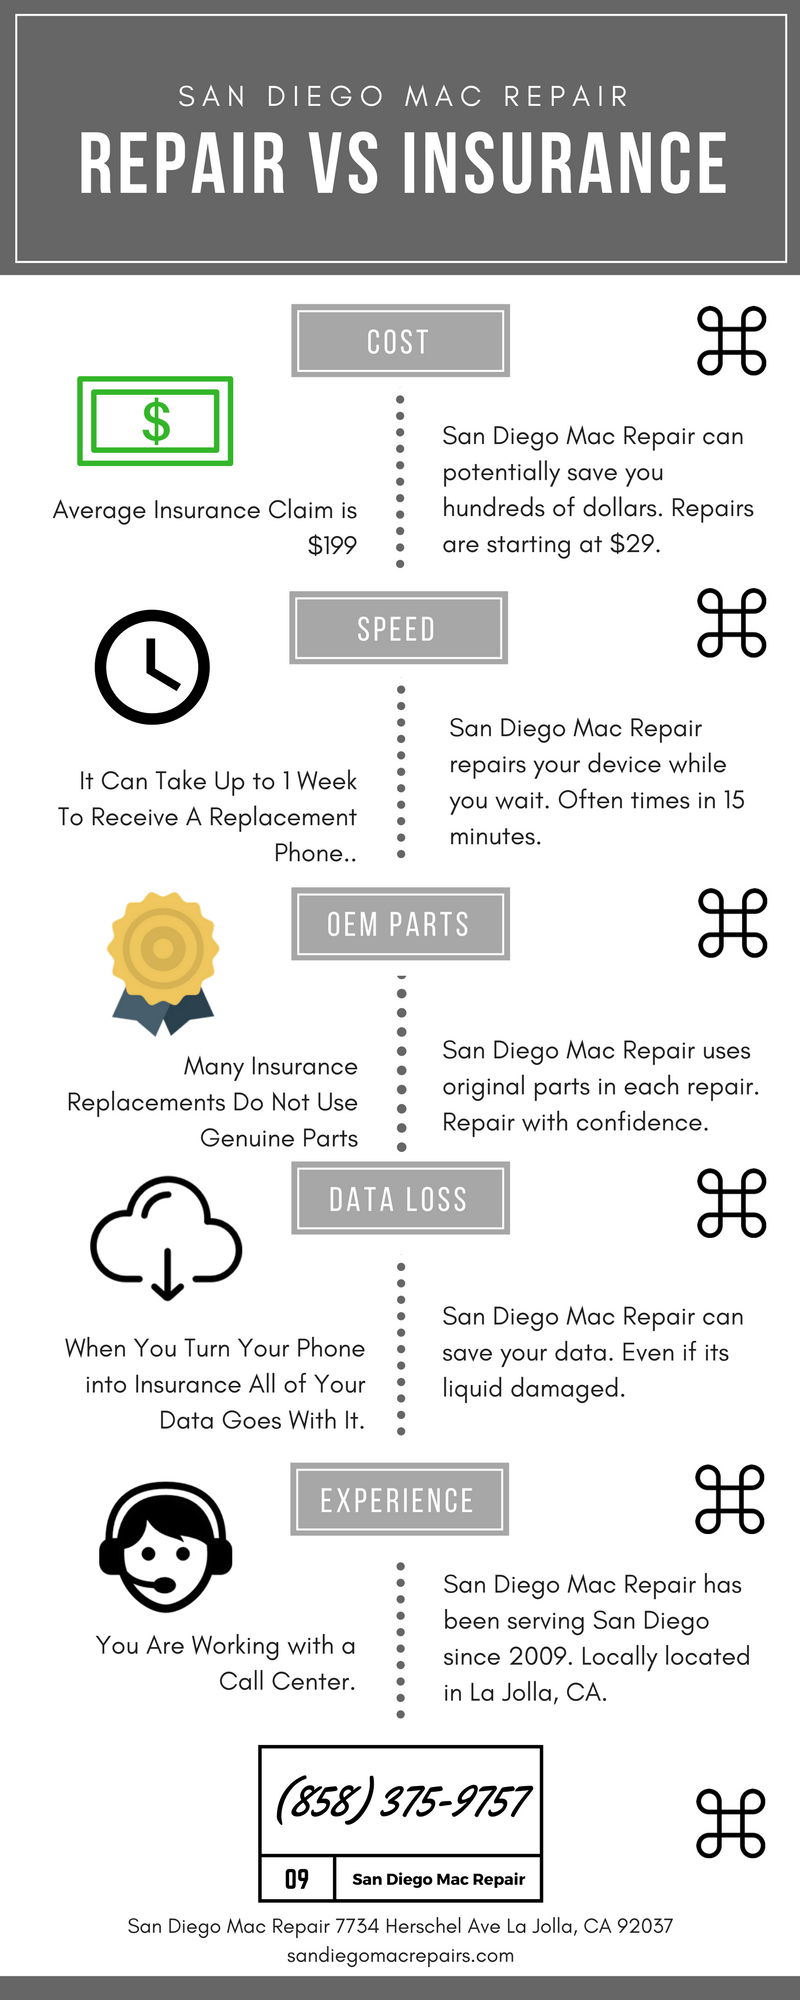 repair vs insurance iPhone repair in La Jolla. San Diego Mac Repair infograph about repair vs insurance for iPhone repairs.